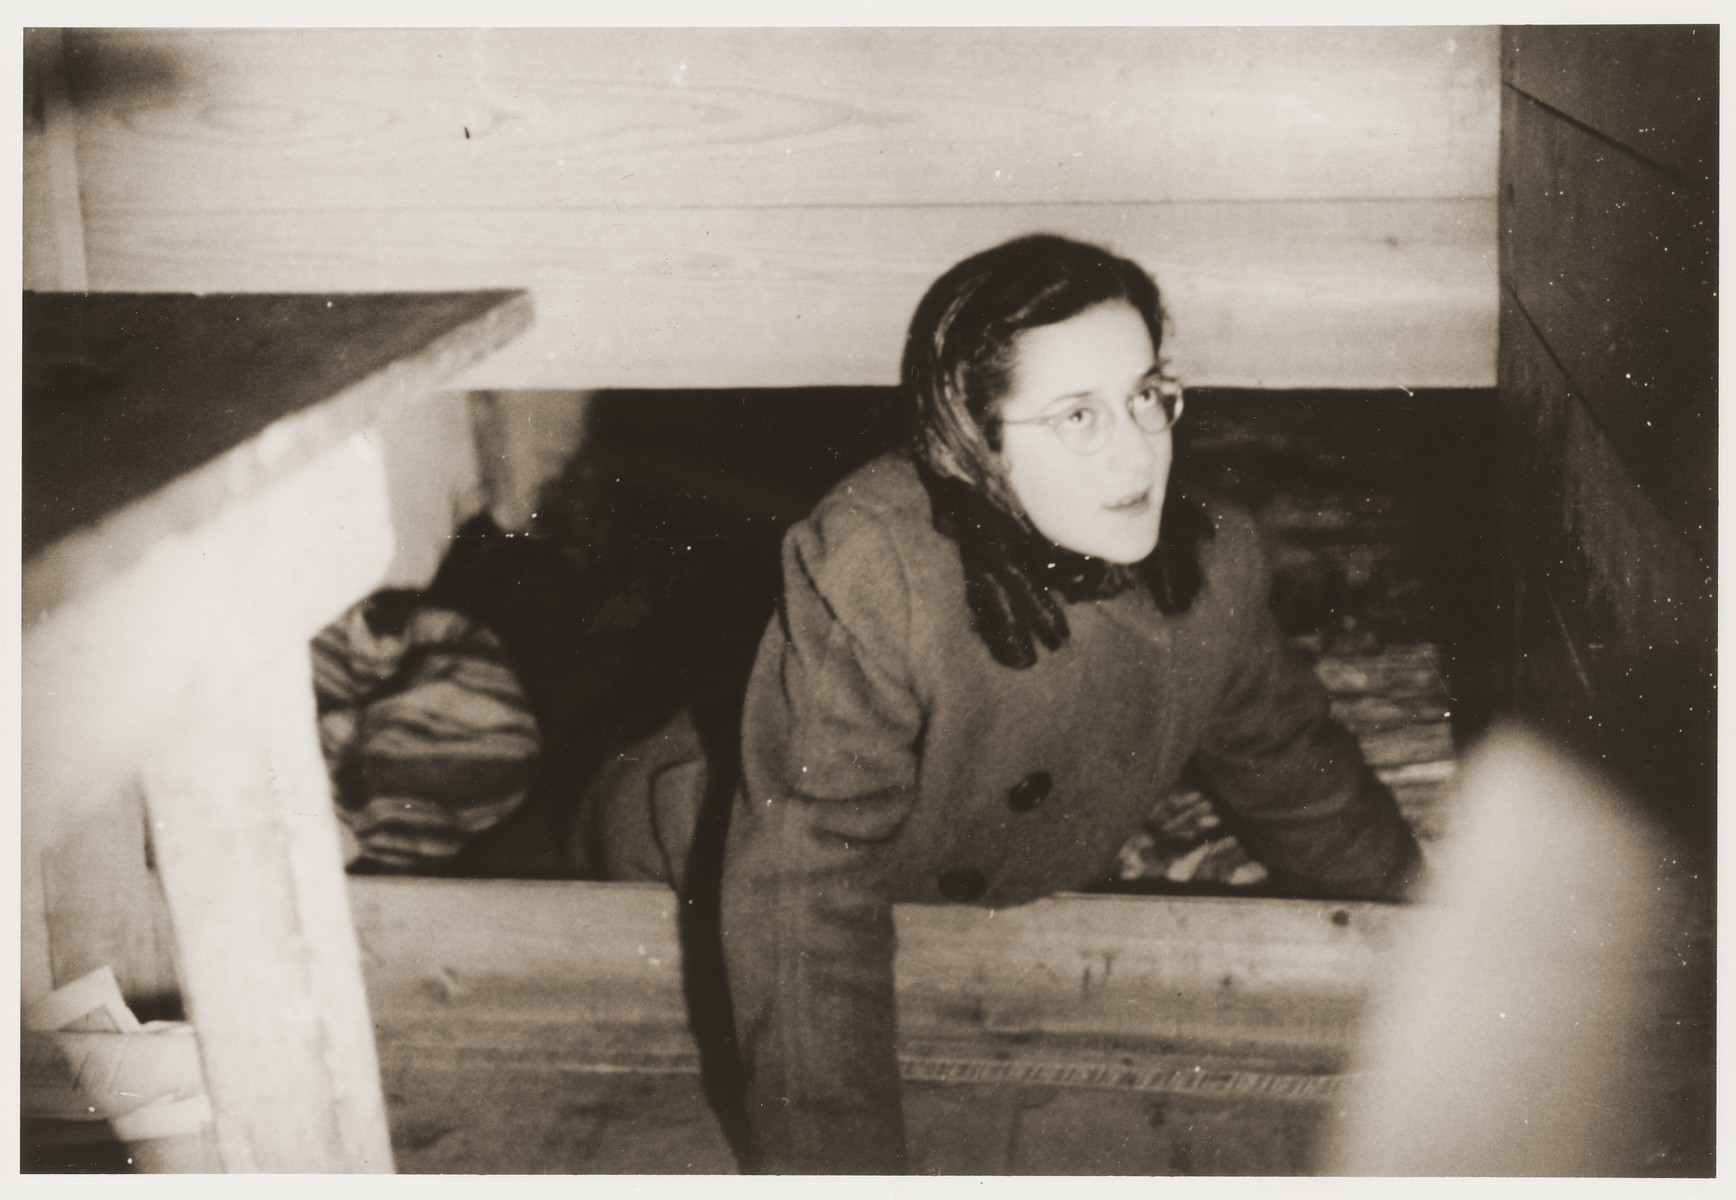 Suse Grunbaum lies in an attic storeroom at the home of Bernard and Mina Hartemink in Sinderen, the Netherlands, where she was hidden during the war.